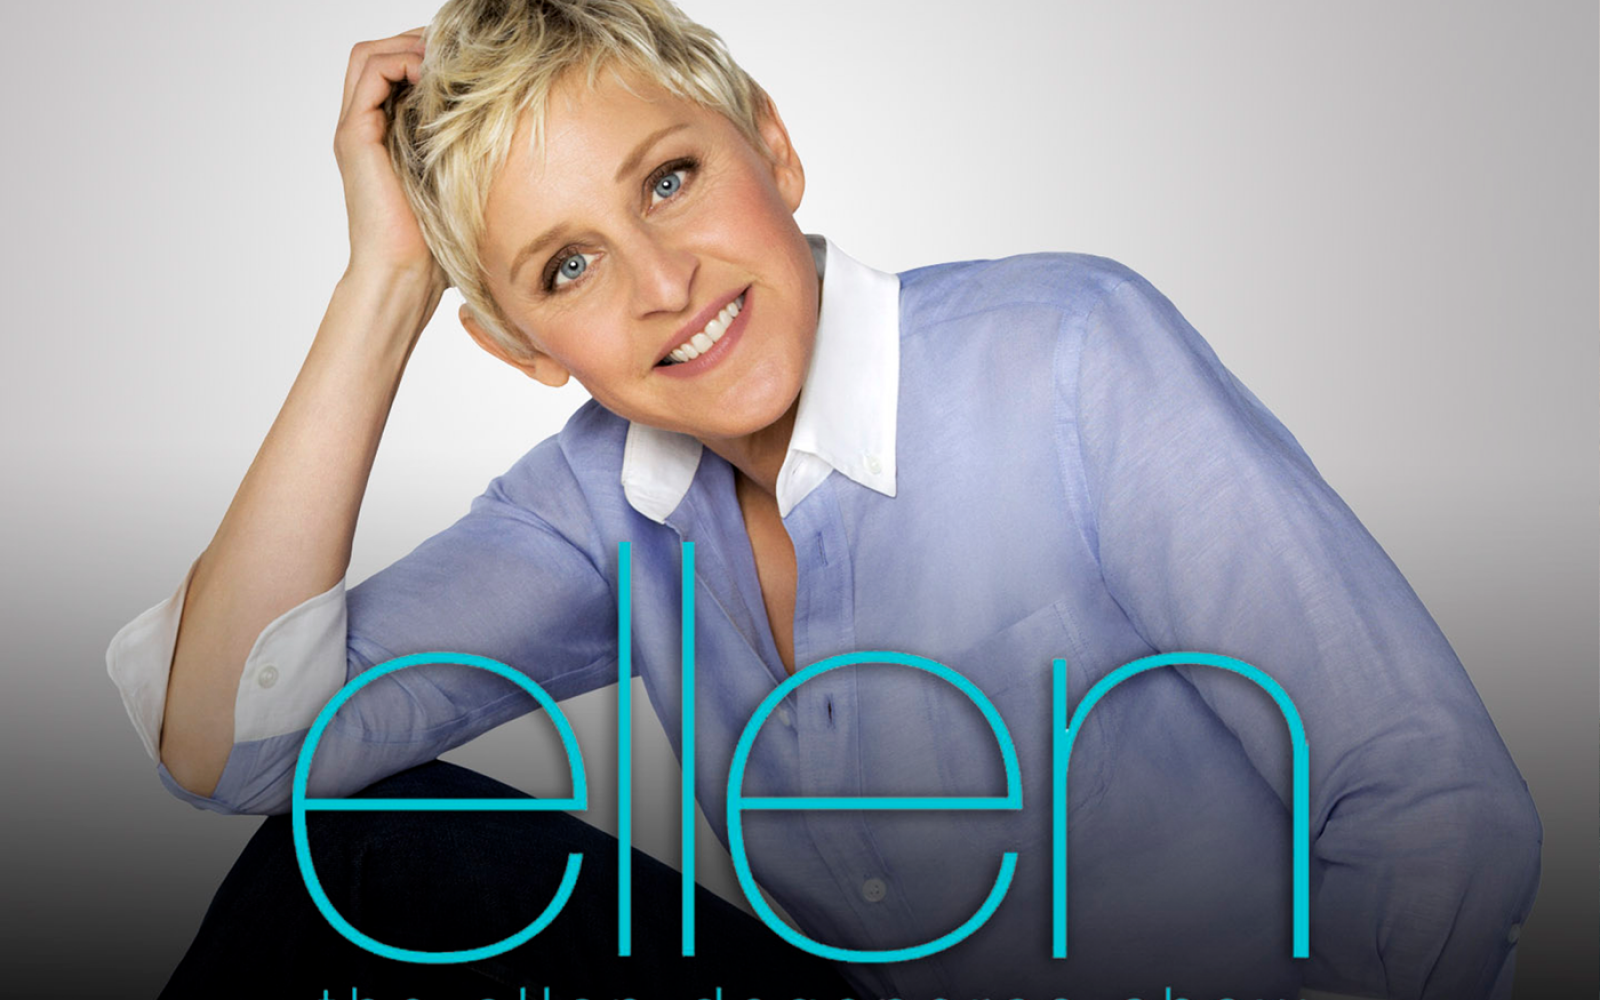 50 Touching Ellen DeGeneres Quotes That Prove Why She's Queen